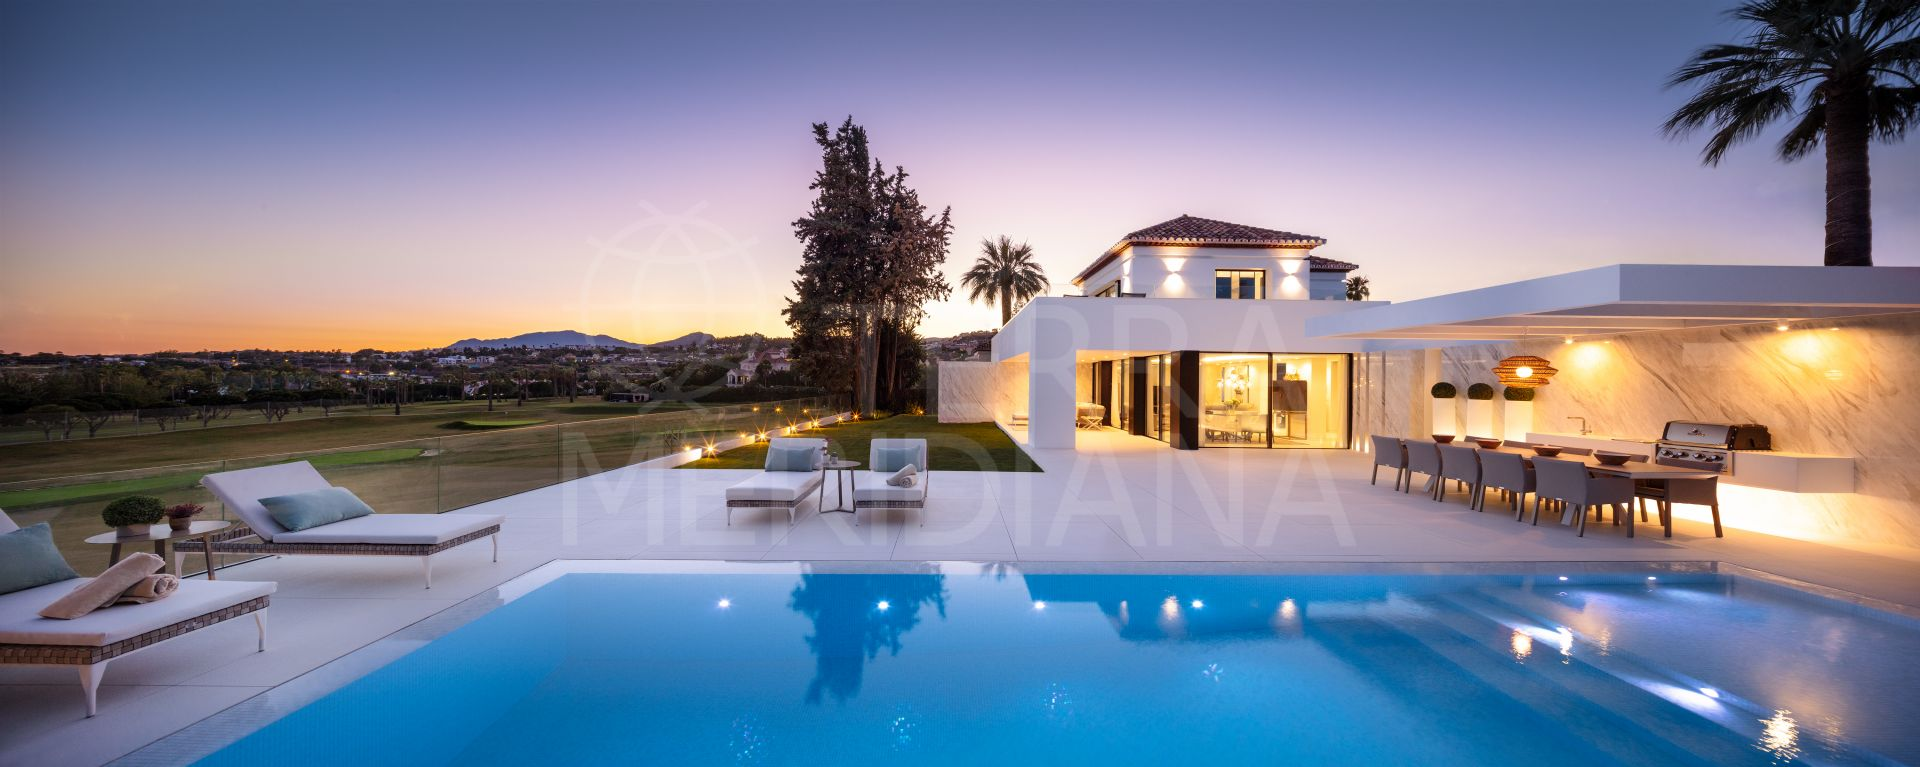 Recently upgraded frontline golf luxury villa with uninterrupted views for sale in Los Naranjos Golf, Nueva Andalucia, Marbella